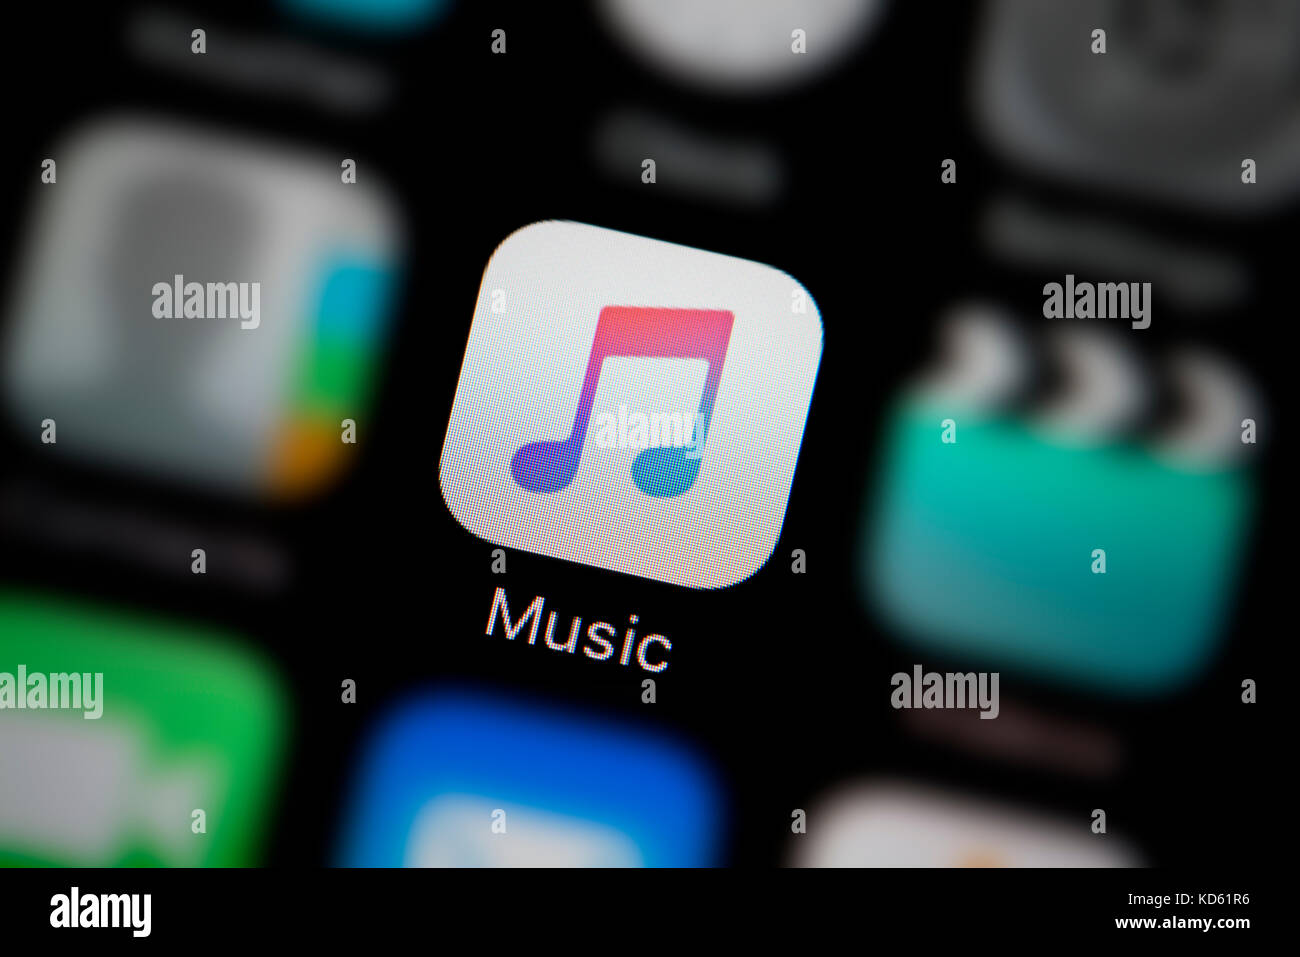 how to close music app on iphone